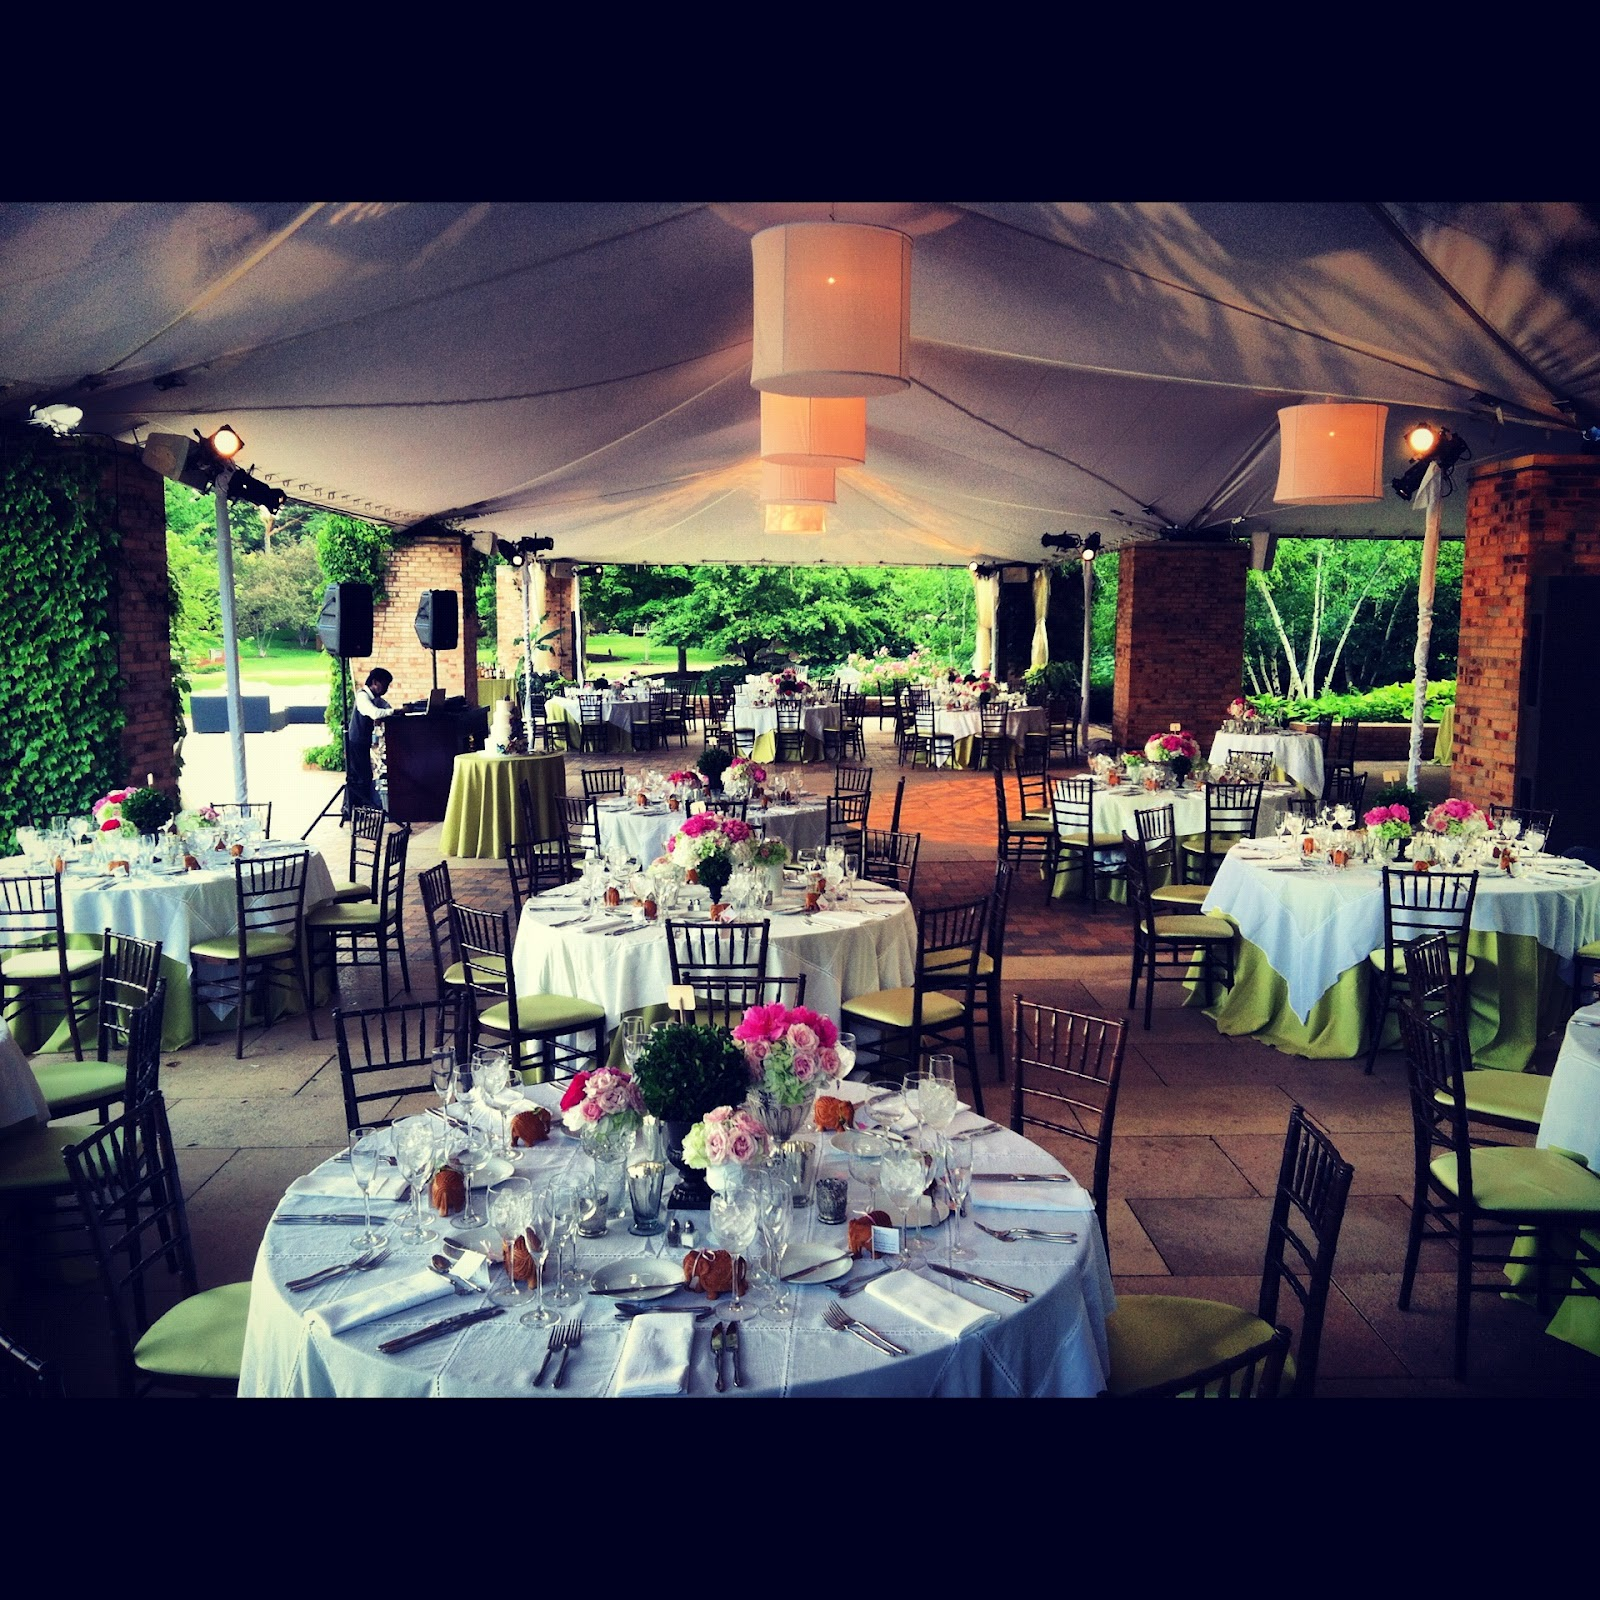 Wedding Banquet: Liven It Up Events Blog, Giving Your Wedding Planning